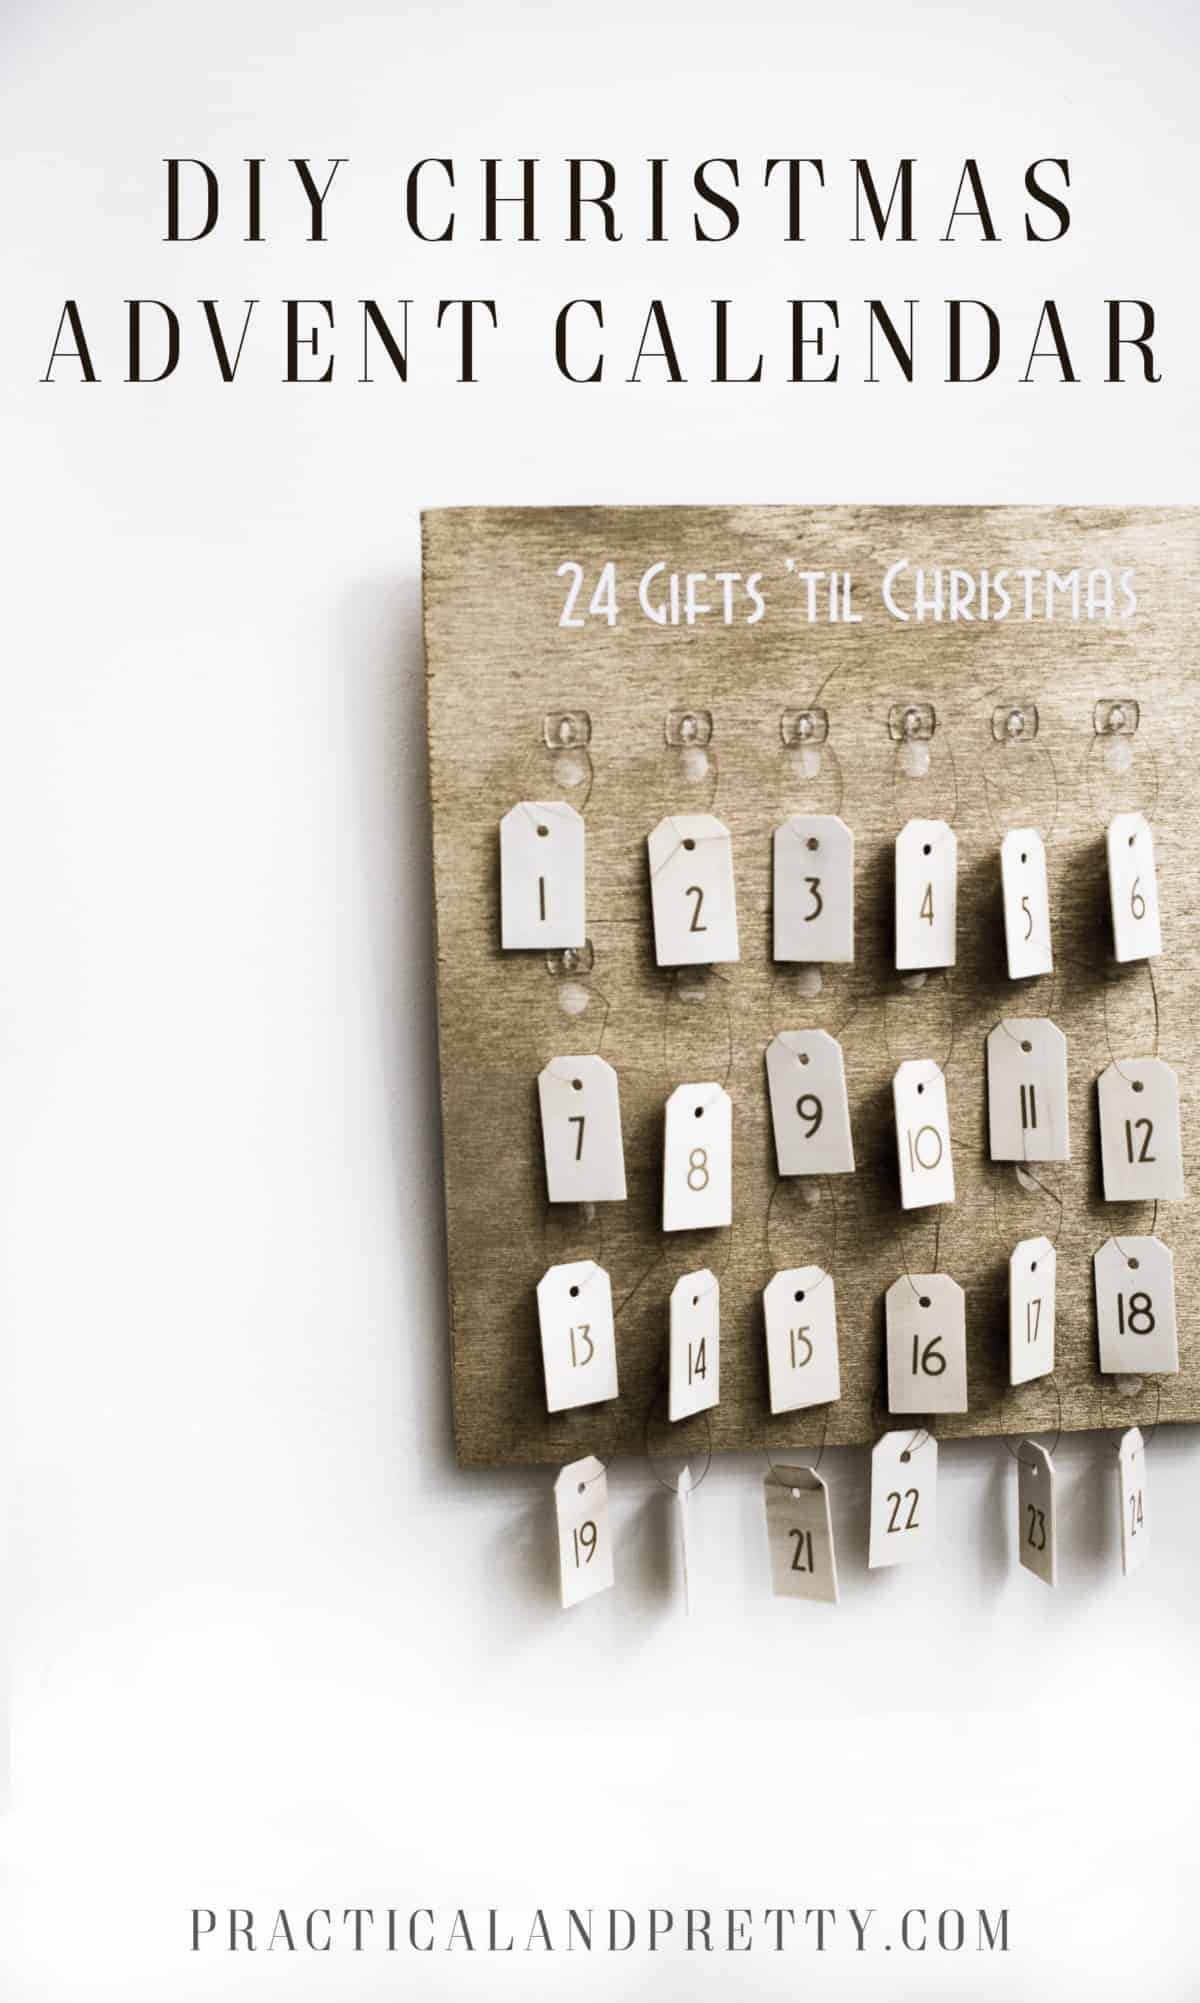 This Christmas advent calendar will get you in the gift giving spirit for 24 gifts till christmas! #cricutmade #cricutholiday